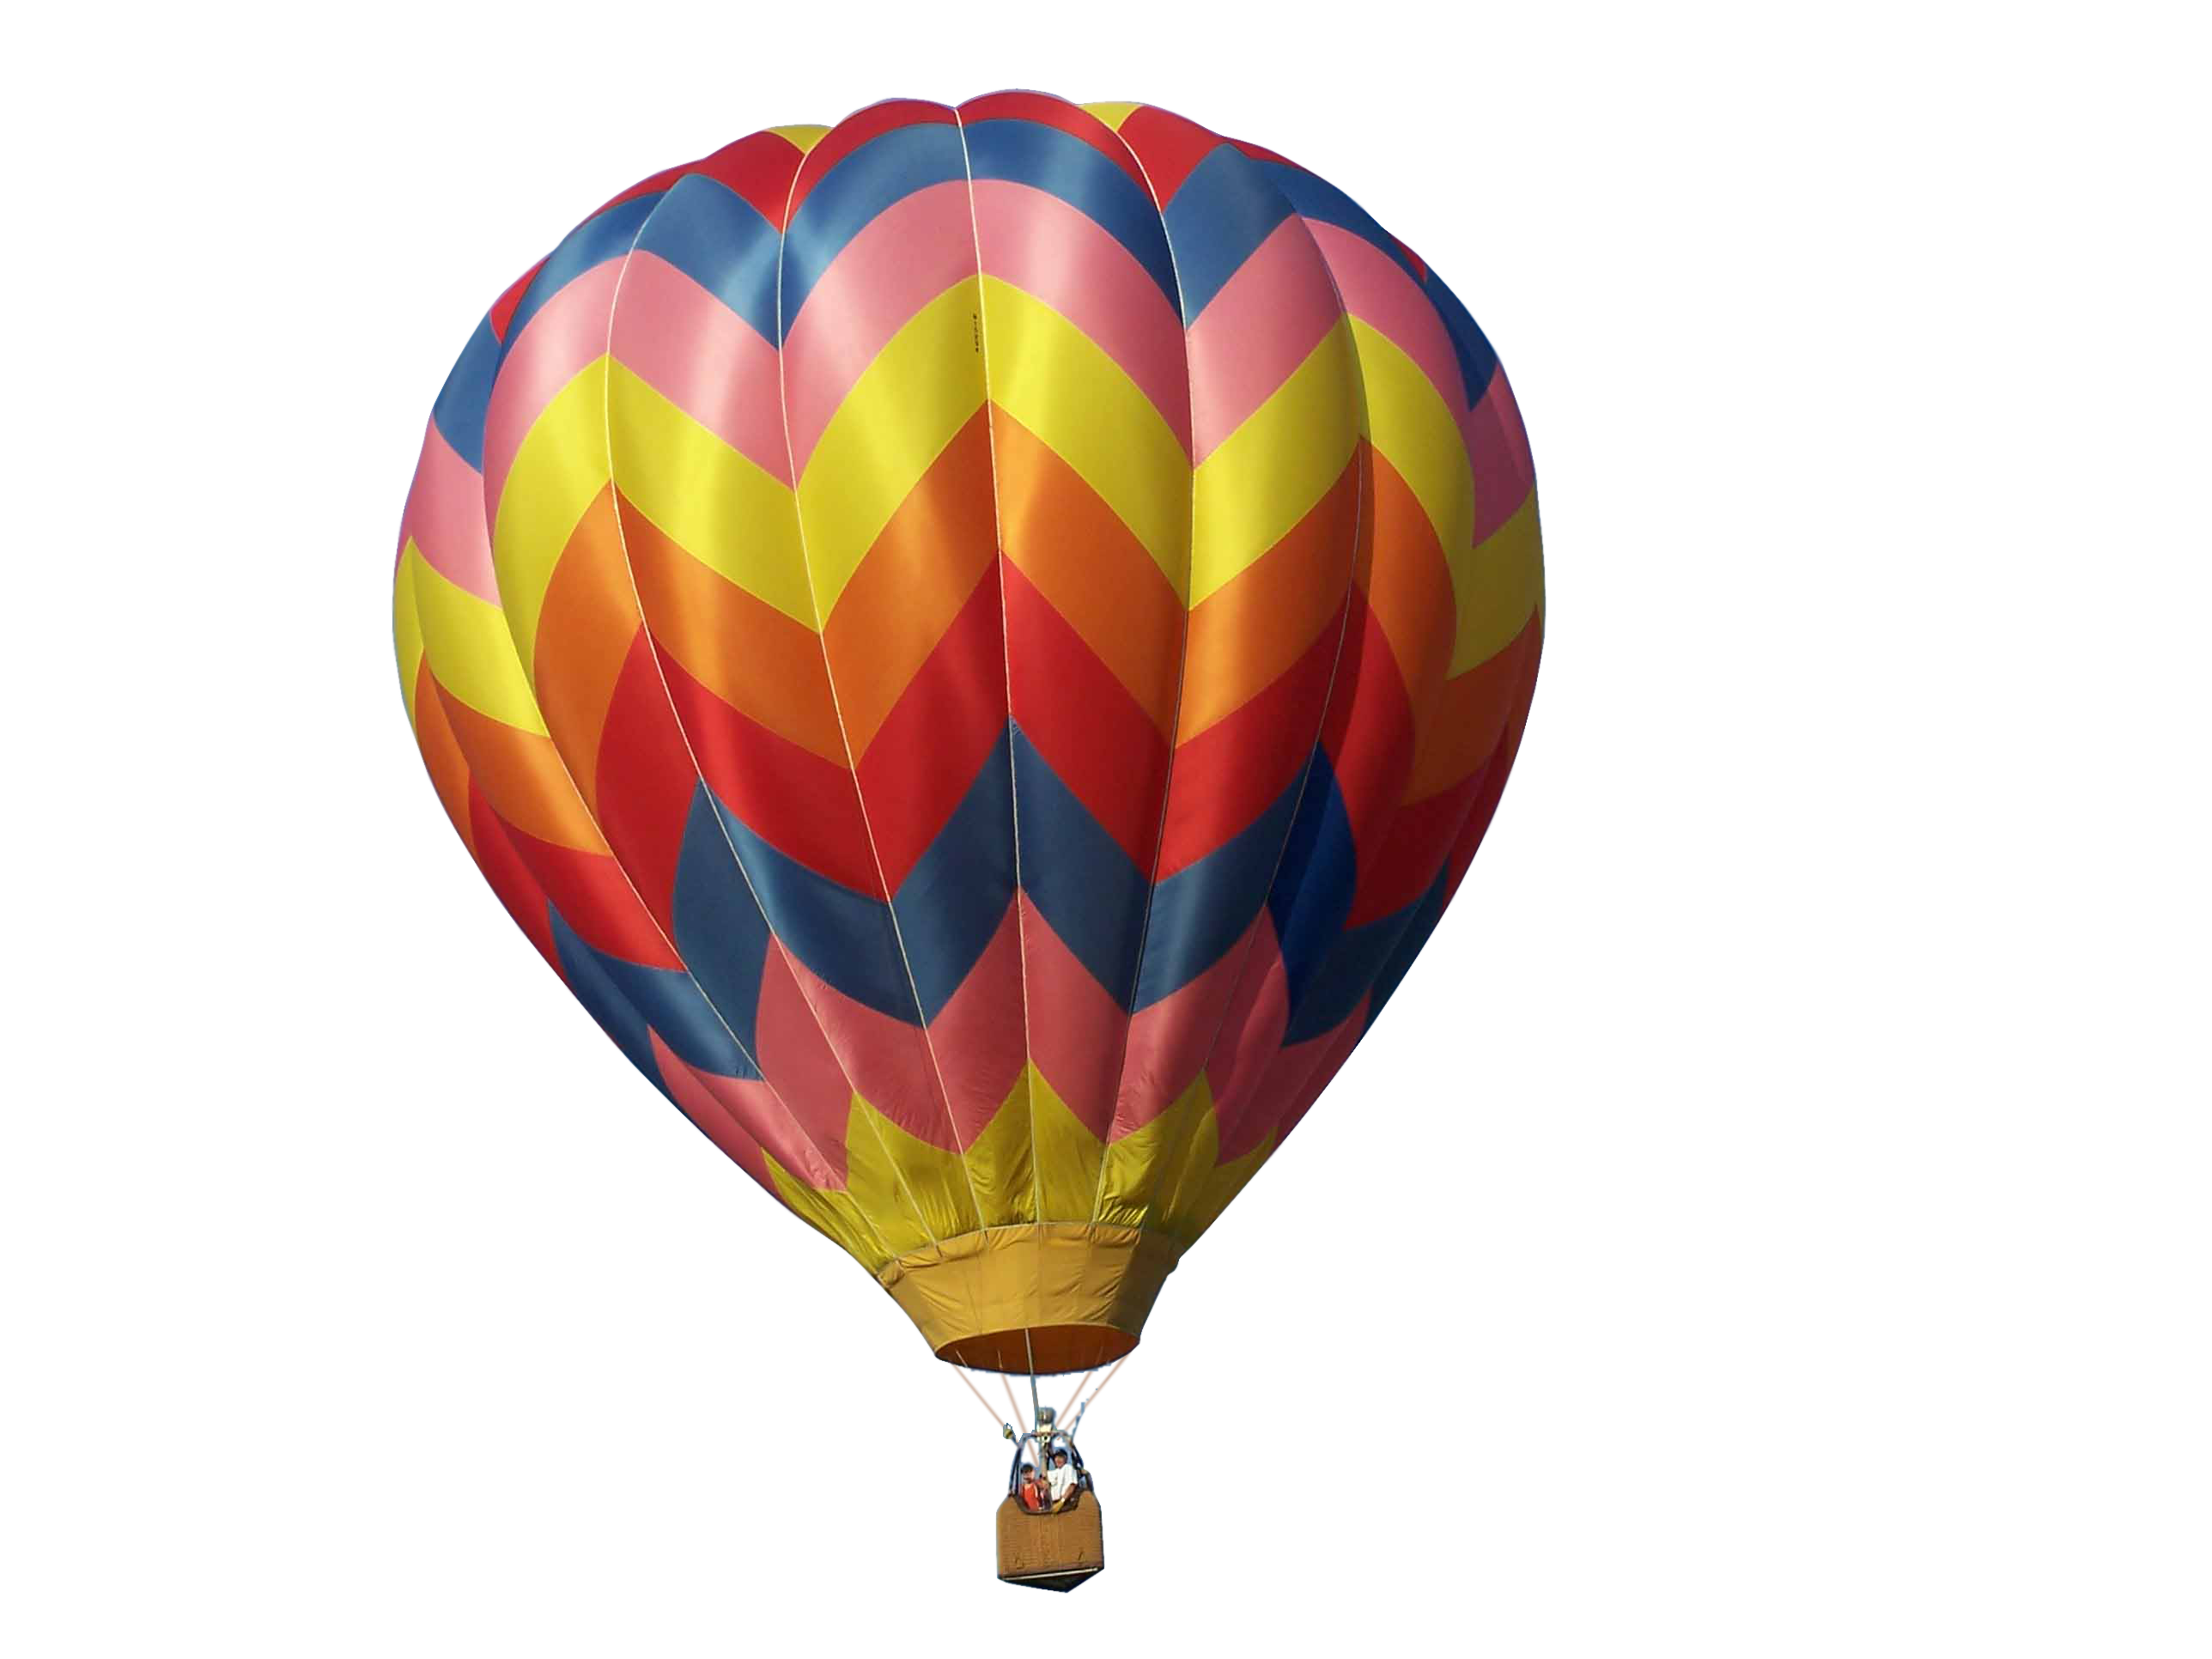 Air Balloon In Png image #46768